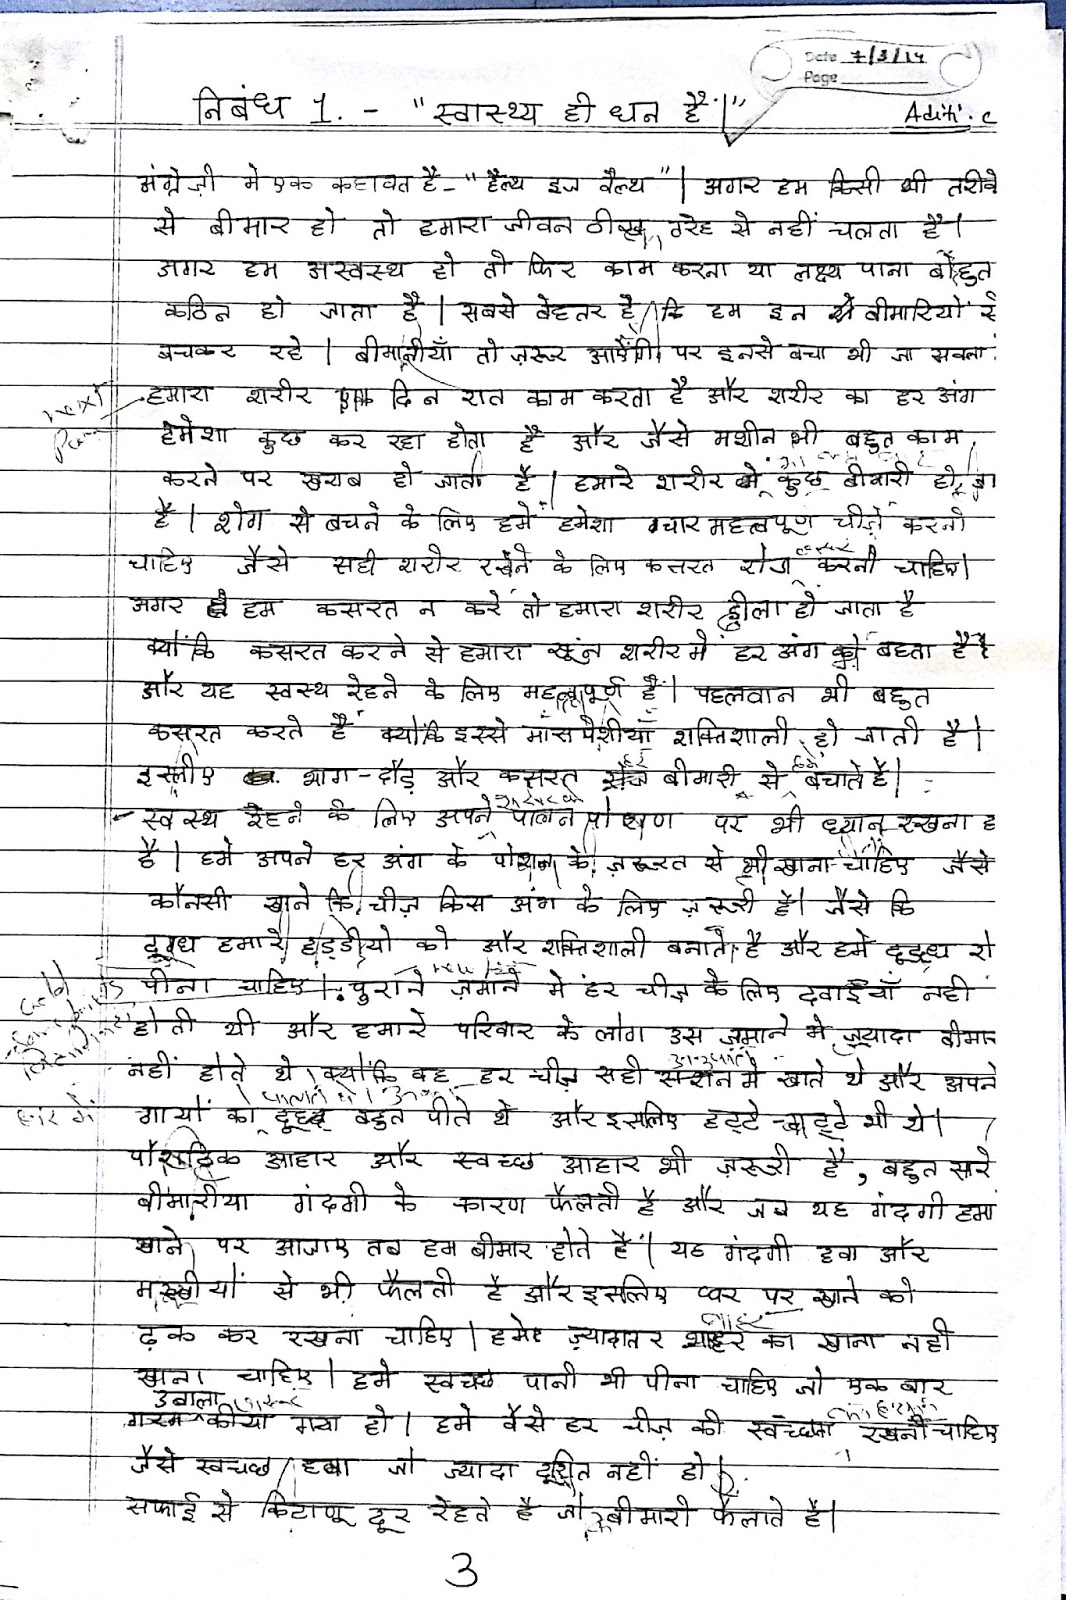 essay on swasthya hi jeevan hai once you have the structure written down in note form the number of words for each paragraph you can start to work on the details